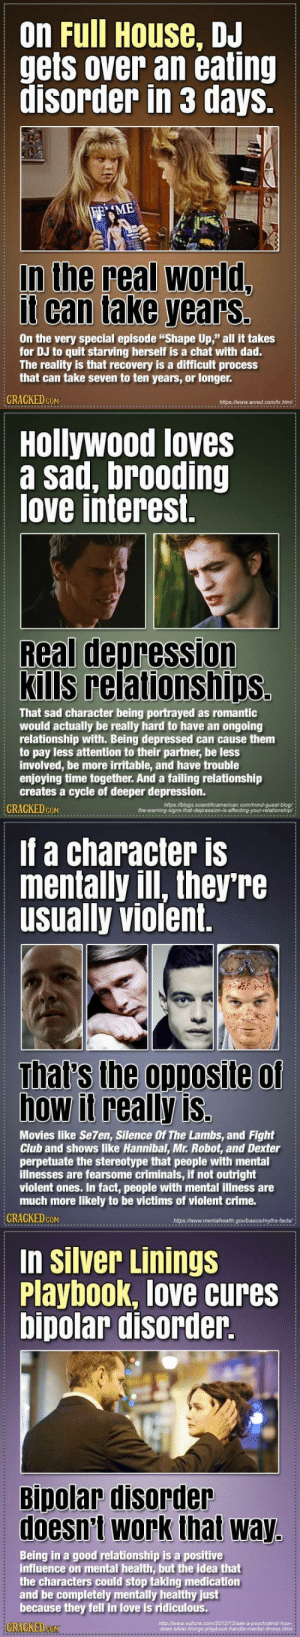 "tiggurix: cracked: 22 Things Movies Get Completely Wrong About Mental Illness Cracked doing the Lord's work and shedding light on ableism and inaccuracy. : on Full House, DJ  gets over an eating  disorder in 3 days.  FEME  In the real world,  it can take yearsS  On the very special episode ""Shape Up,"" all it takes  for DJ to quit starving herself is a chat with dad.  The reality is that recovery is a difficult process  that can take seven to ten years, or longer.  CRACKED COM  https//www.anred.com/tx.html   Hollywood loves  a sad, brooding  love interest.  Real depression  Kills relationships.  That sad character being portrayed as romantic  would actually be really hard to have an ongoing  relationship with. Being depressed can cause them  to pay less attention to their partner, be less  involved, be more irritable, and have trouble  enjoying time together. And a failing relationship  creates a cycle of deeper depression.  CRACKED COM  https://blogs scientificamerican.com/mind-guest-blog/  the-waming-signs-that-depression-is-affecting-your-relationship/   If a character is  mentally ill, they're  usually violent.  That's the opposite of  how it really is.  Movies like Se7en, Silence Of The Lambs, and Fight  Club and shows like Hannibal, Mr. Robot, and Dexter  perpetuate the stereotype that people with mental  illnesses are fearsome criminals, if not outright  violent ones. In fact, people with mental illness are  much more likely to be victims of violent crime.  CRACKED GOM  http://www.mentalhealth gov/basics/myths-facts   in Silver Linings  Playbook, love cures  bipolar disorder  Bipolar disorder  doesn't work that way.  Being in a good relationship is a positive  influence on mental health, but the idea that  the characters could stop taking medication  and be completely mentally healthy just  because they fell în love is ridiculous.  CRACKED CONT  http://www.vuiture.com/2012/12/ask-a-psychiatrist-how-  does-silver-linings-playbook-handle-mental-ilness html tiggurix: cracked: 22 Things Movies Get Completely Wrong About Mental Illness Cracked doing the Lord's work and shedding light on ableism and inaccuracy."